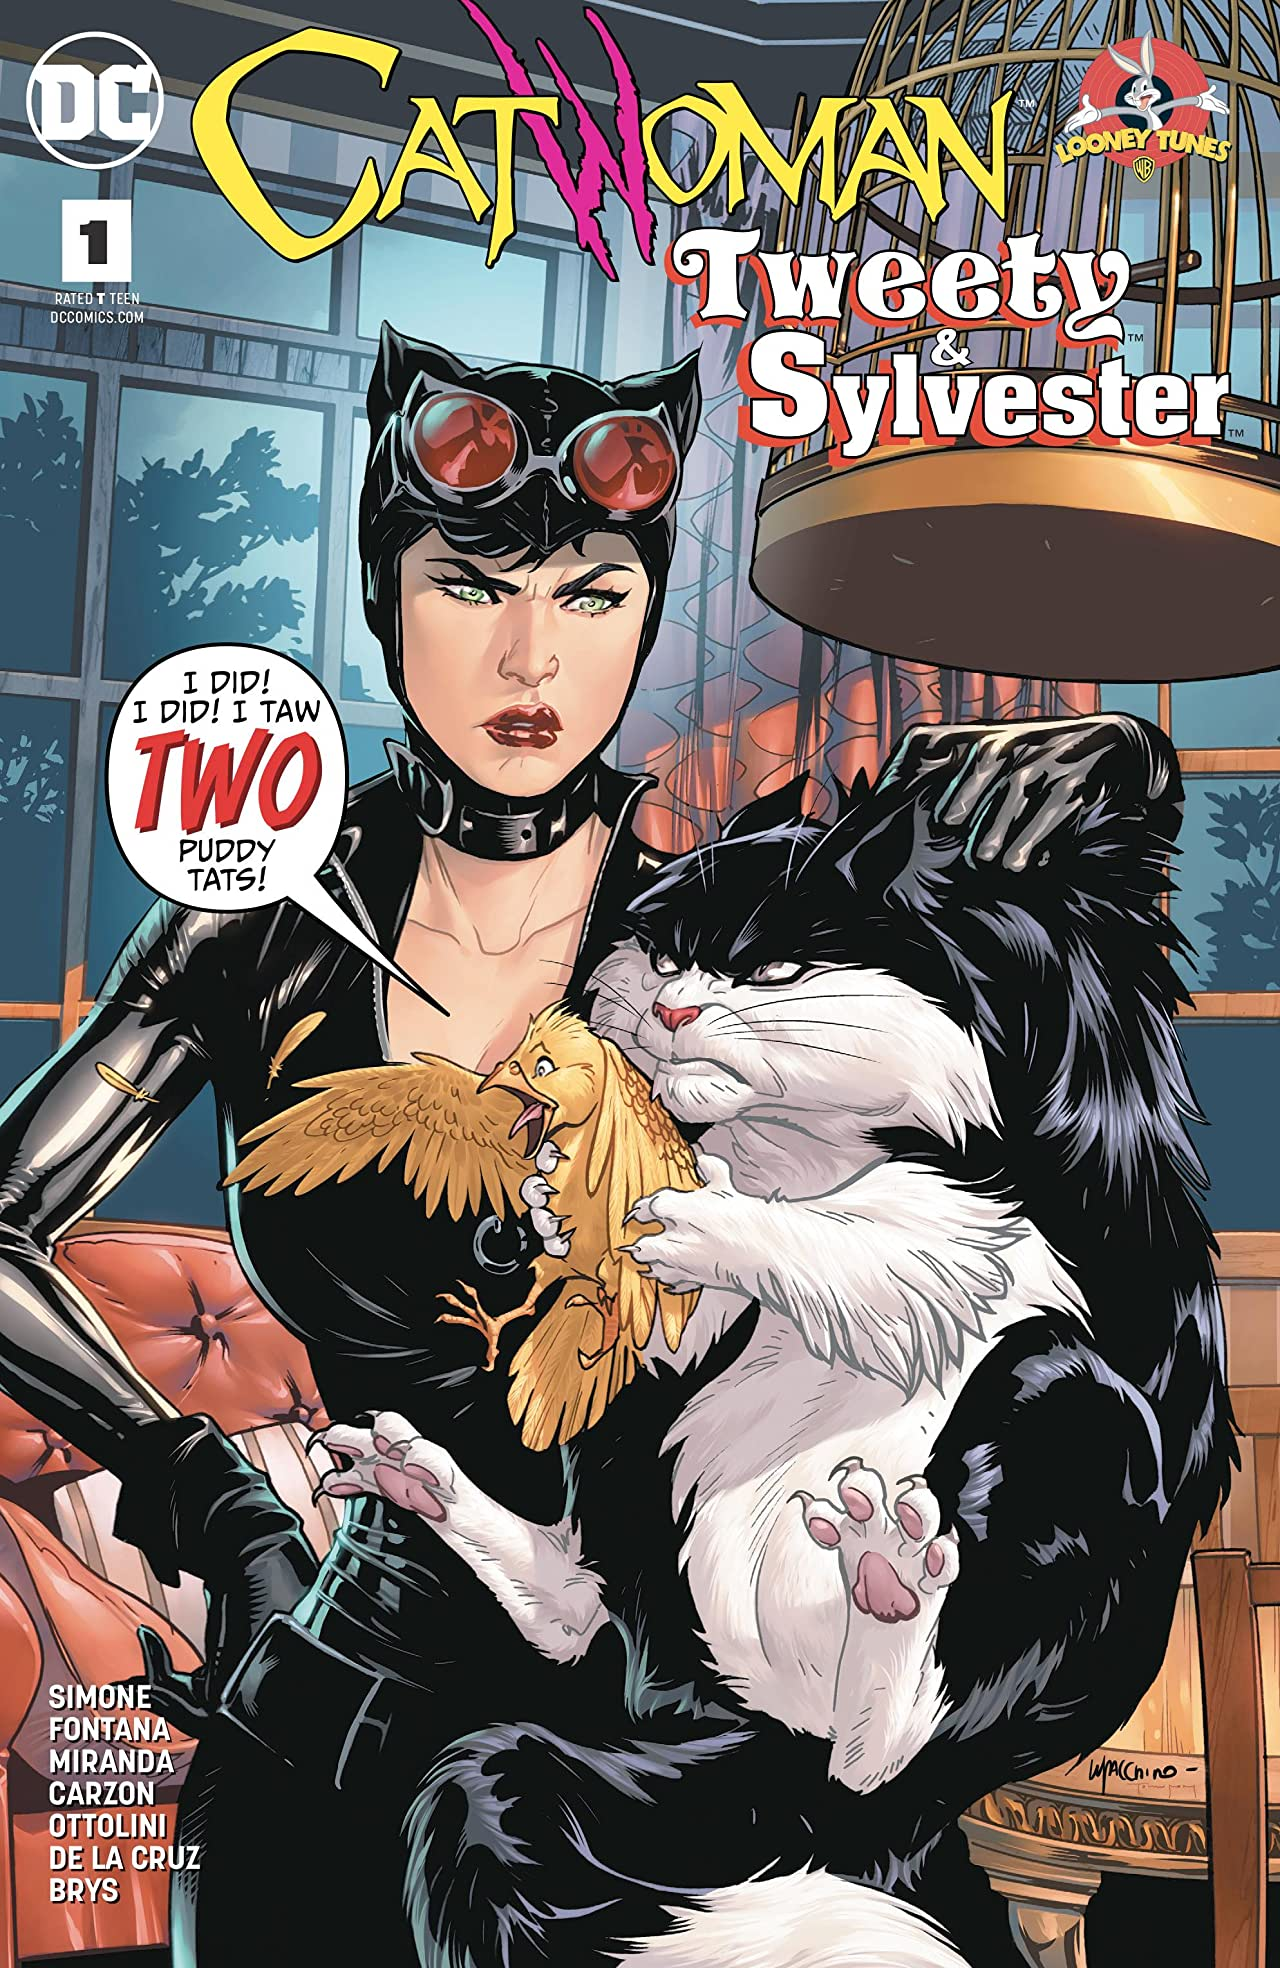 Catwoman/Tweety and Sylvester (2018) #1